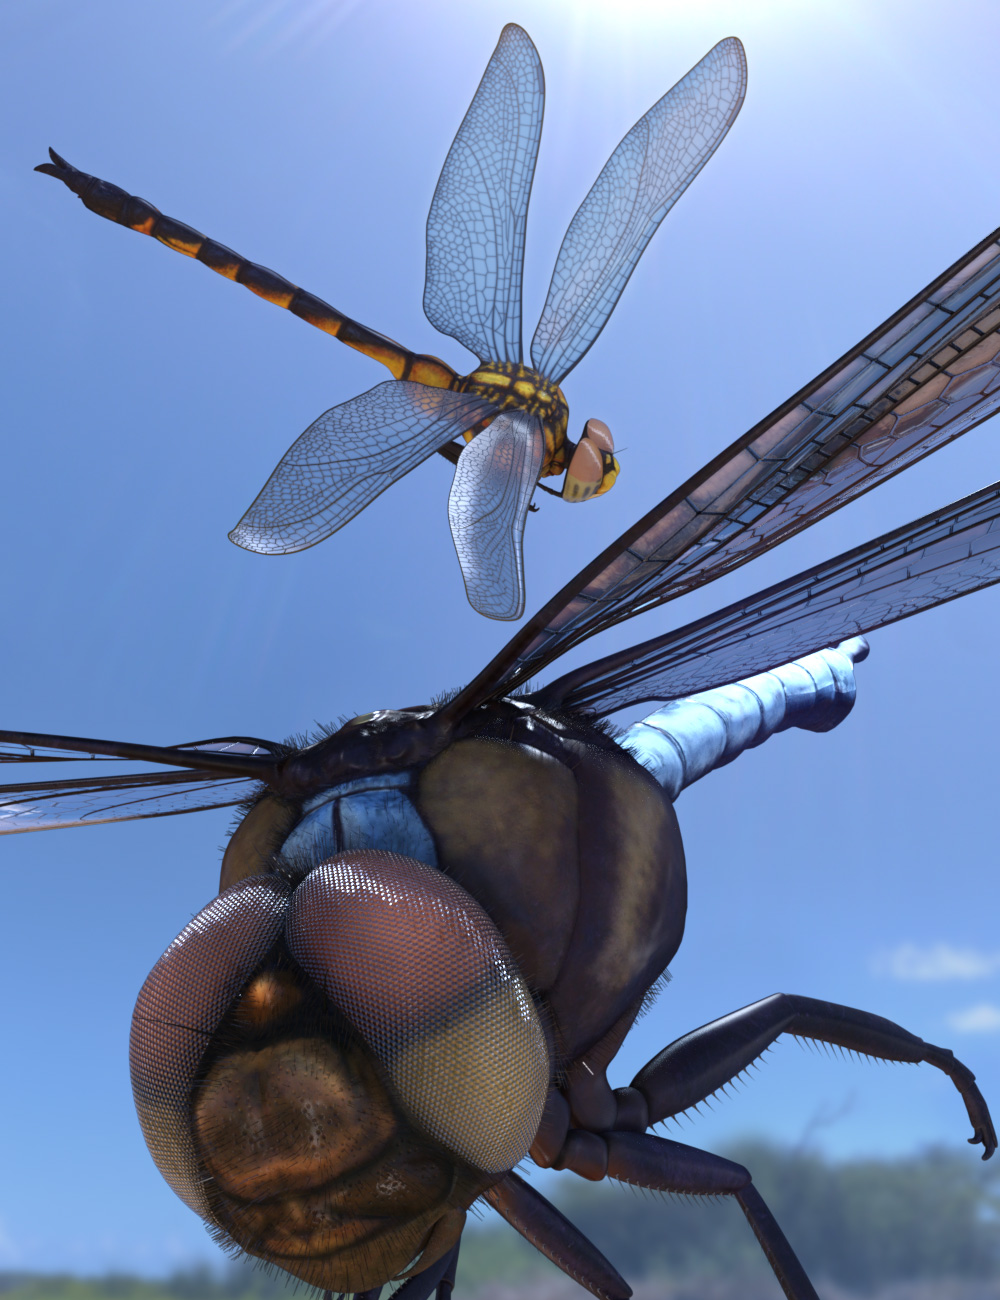 Meshworkz Dragonfly by: WillDupre, 3D Models by Daz 3D